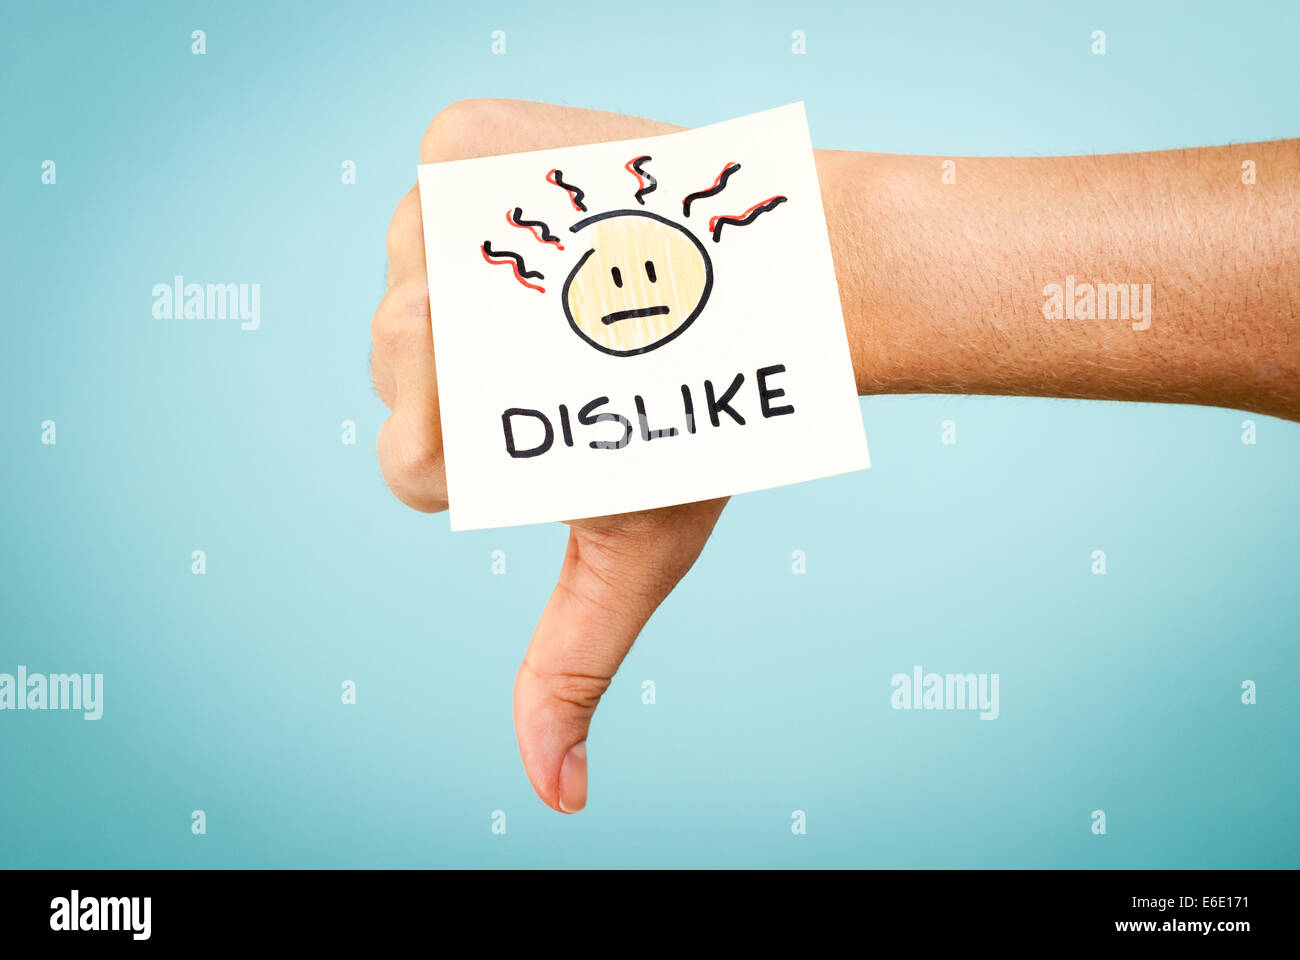 Dislike concept with hand on blue background - Stock Image